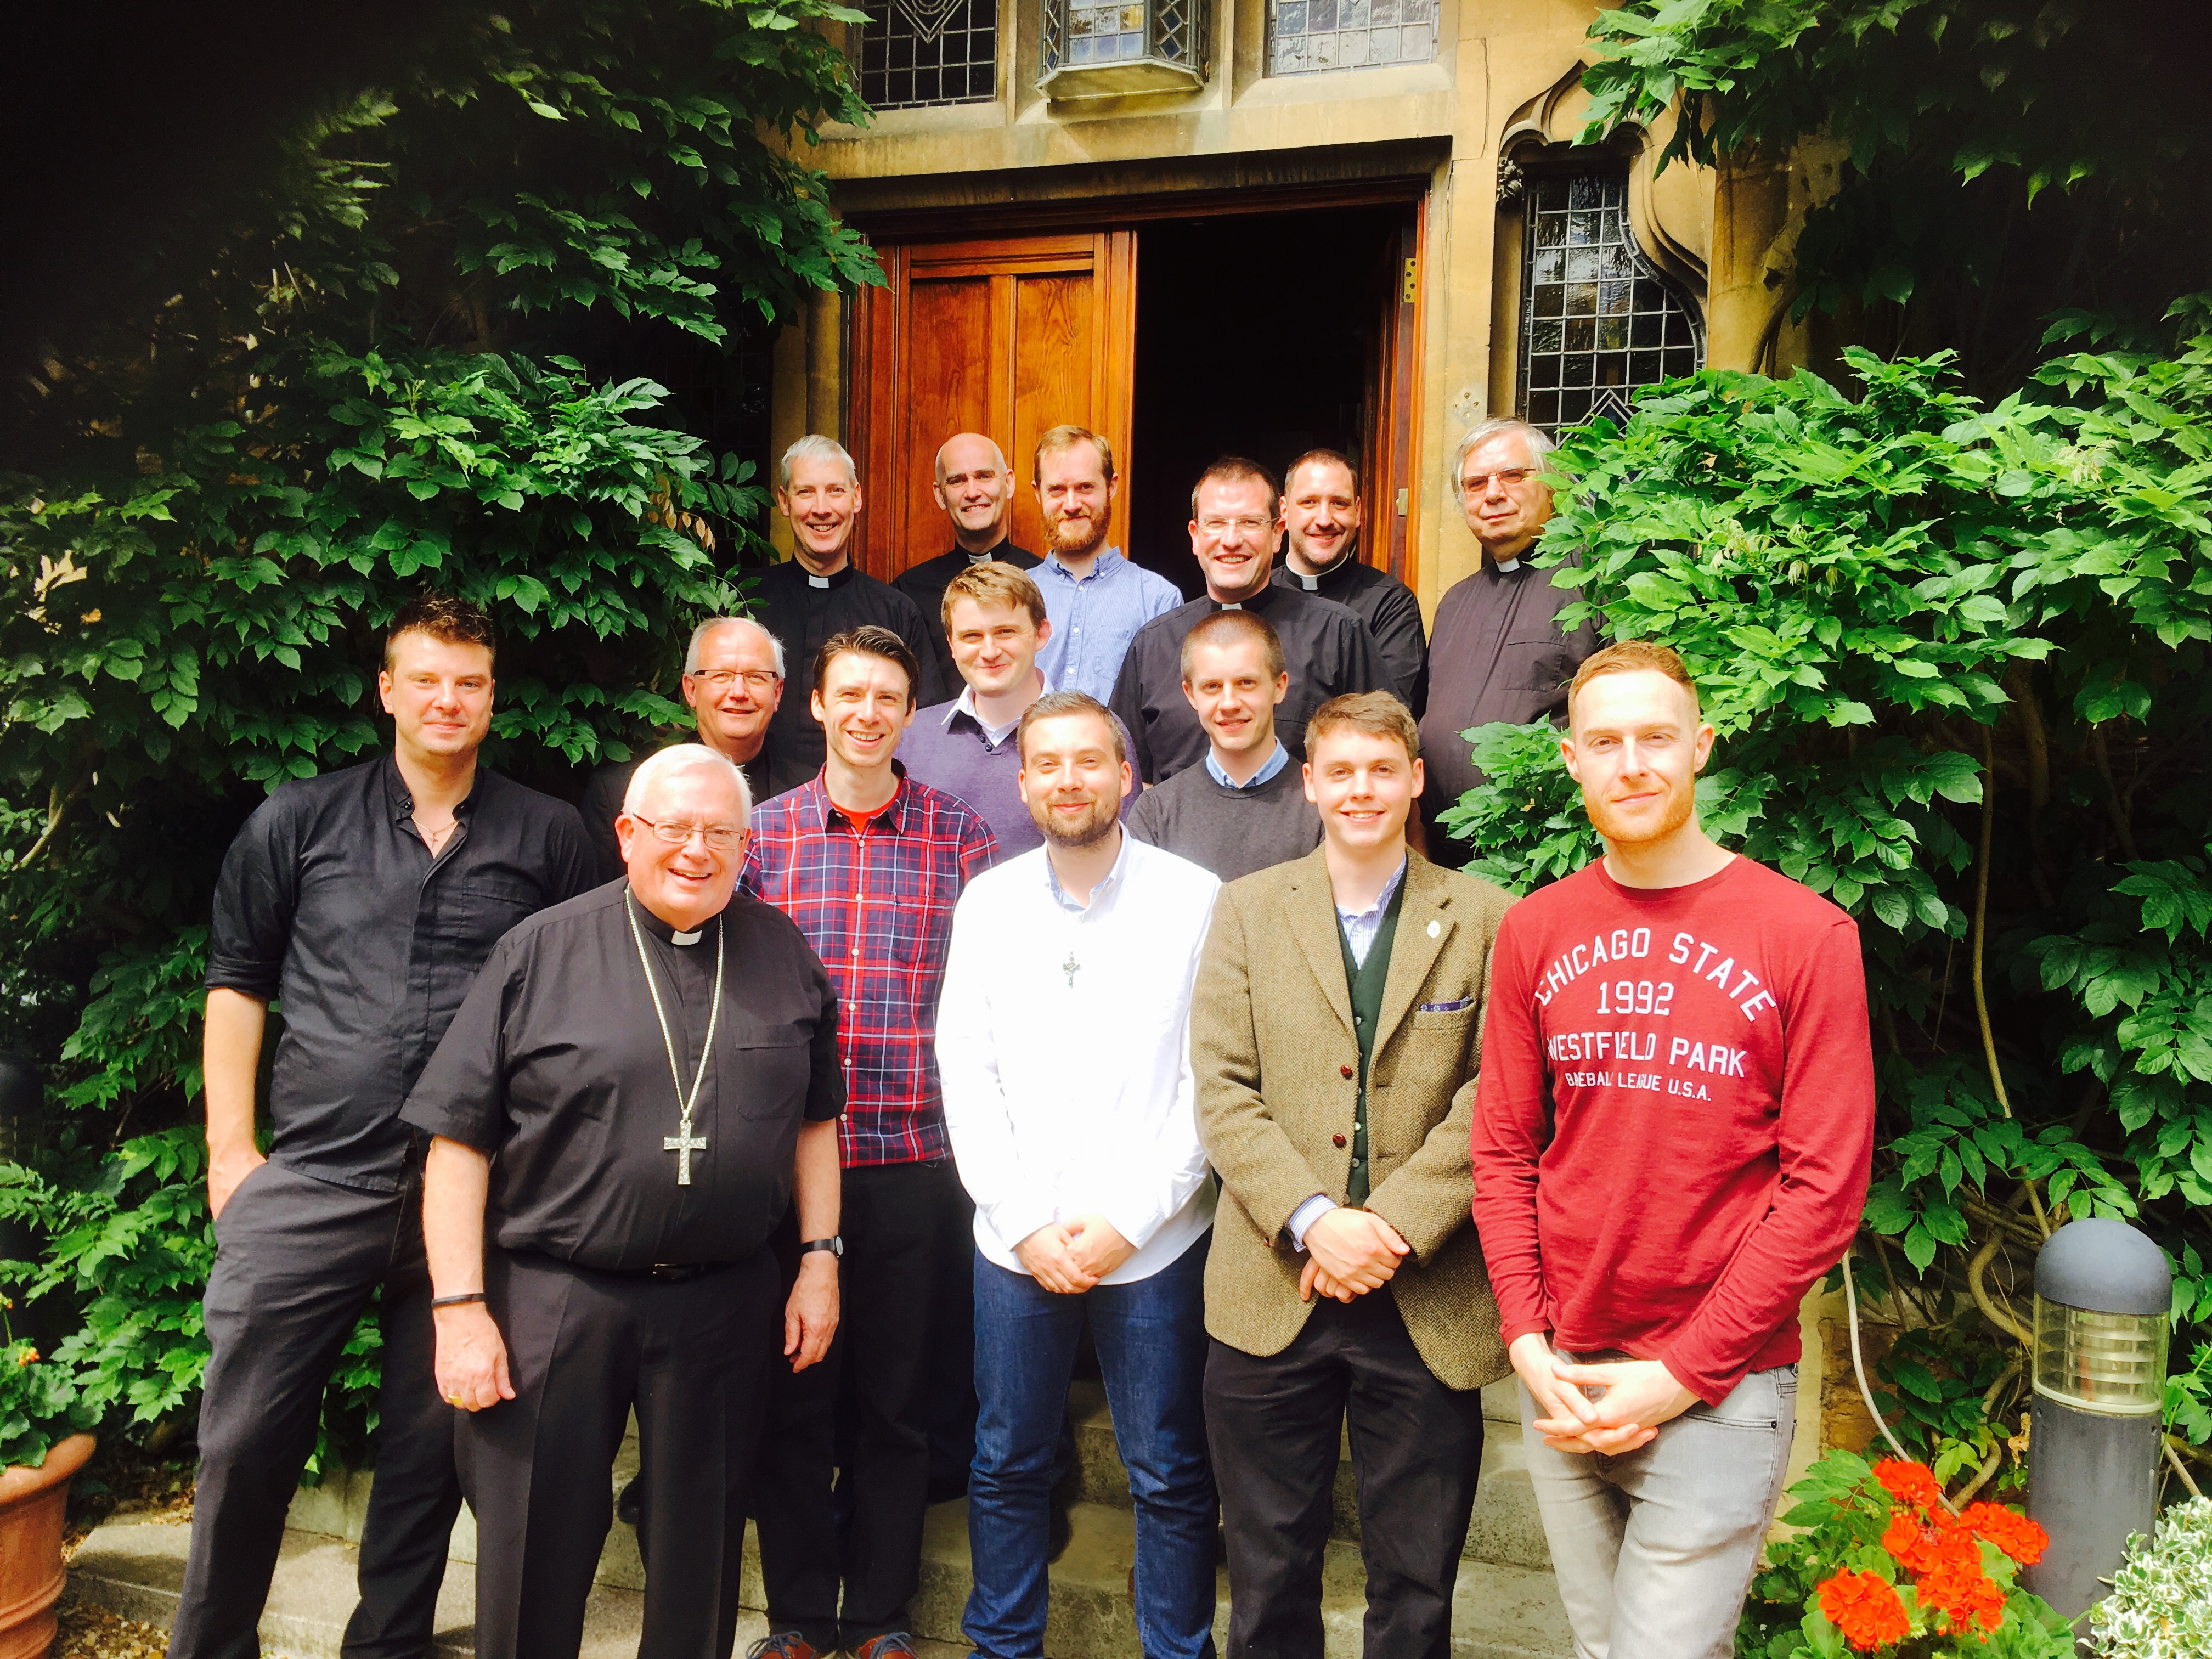 Our diocesan seminarians